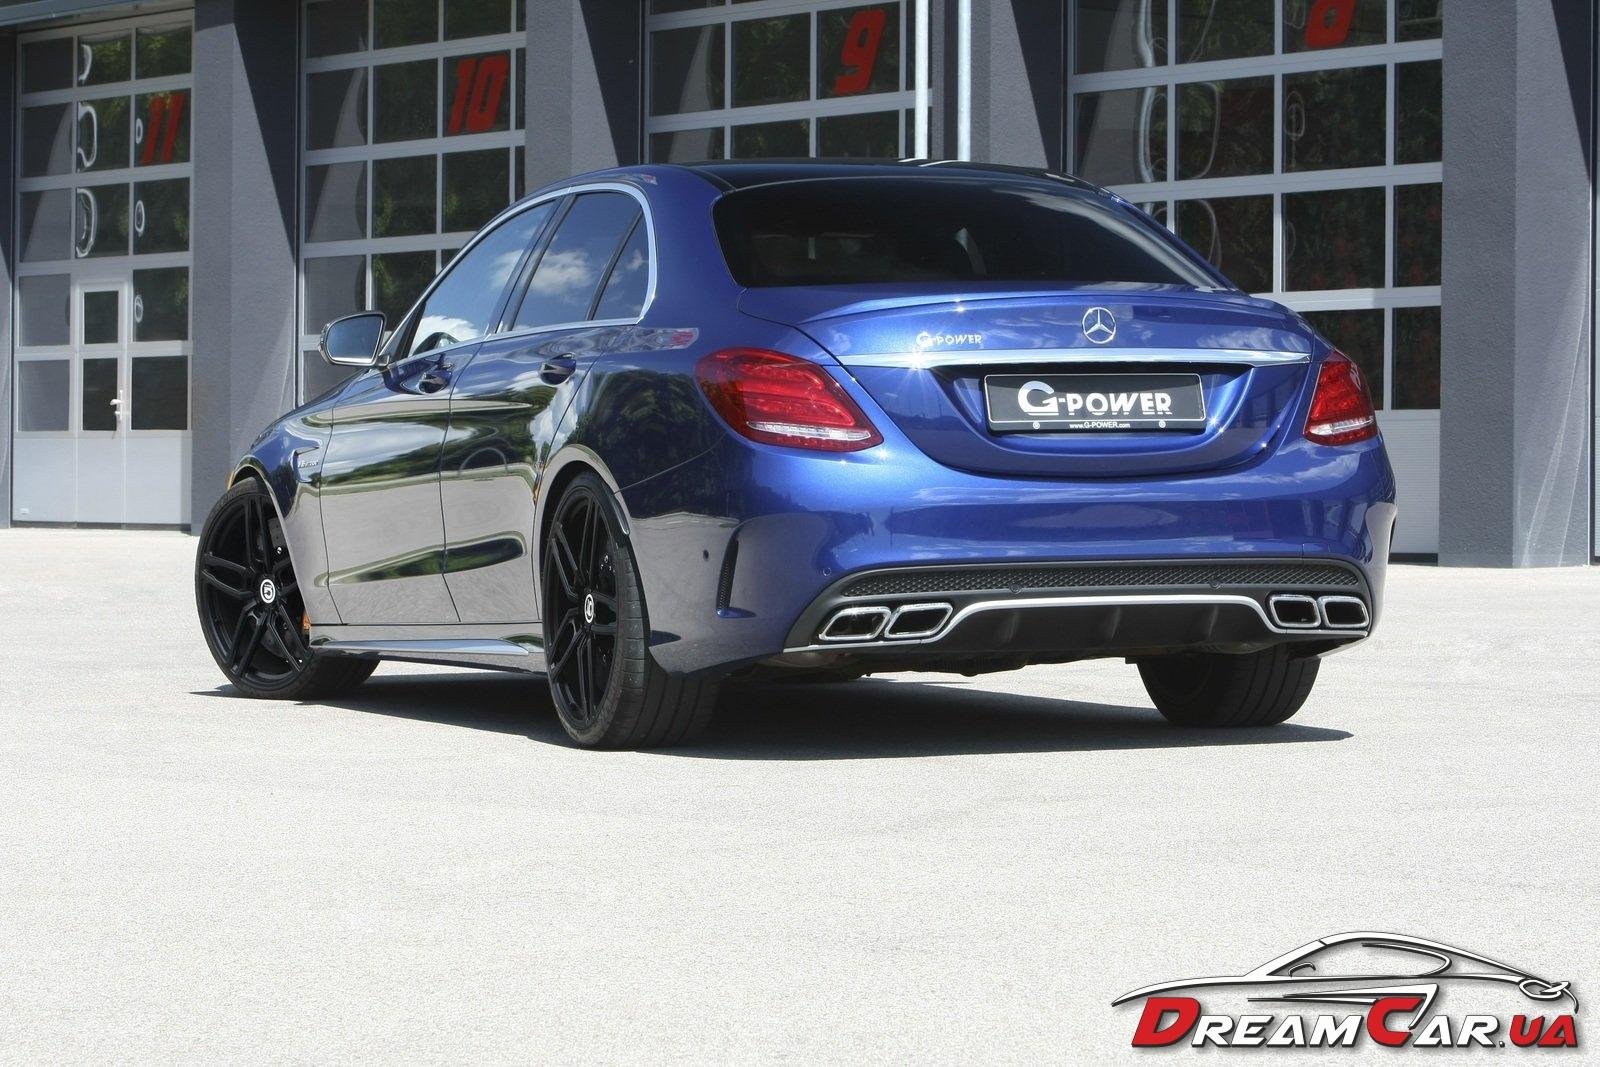 Mercedes C63 S G-power 4